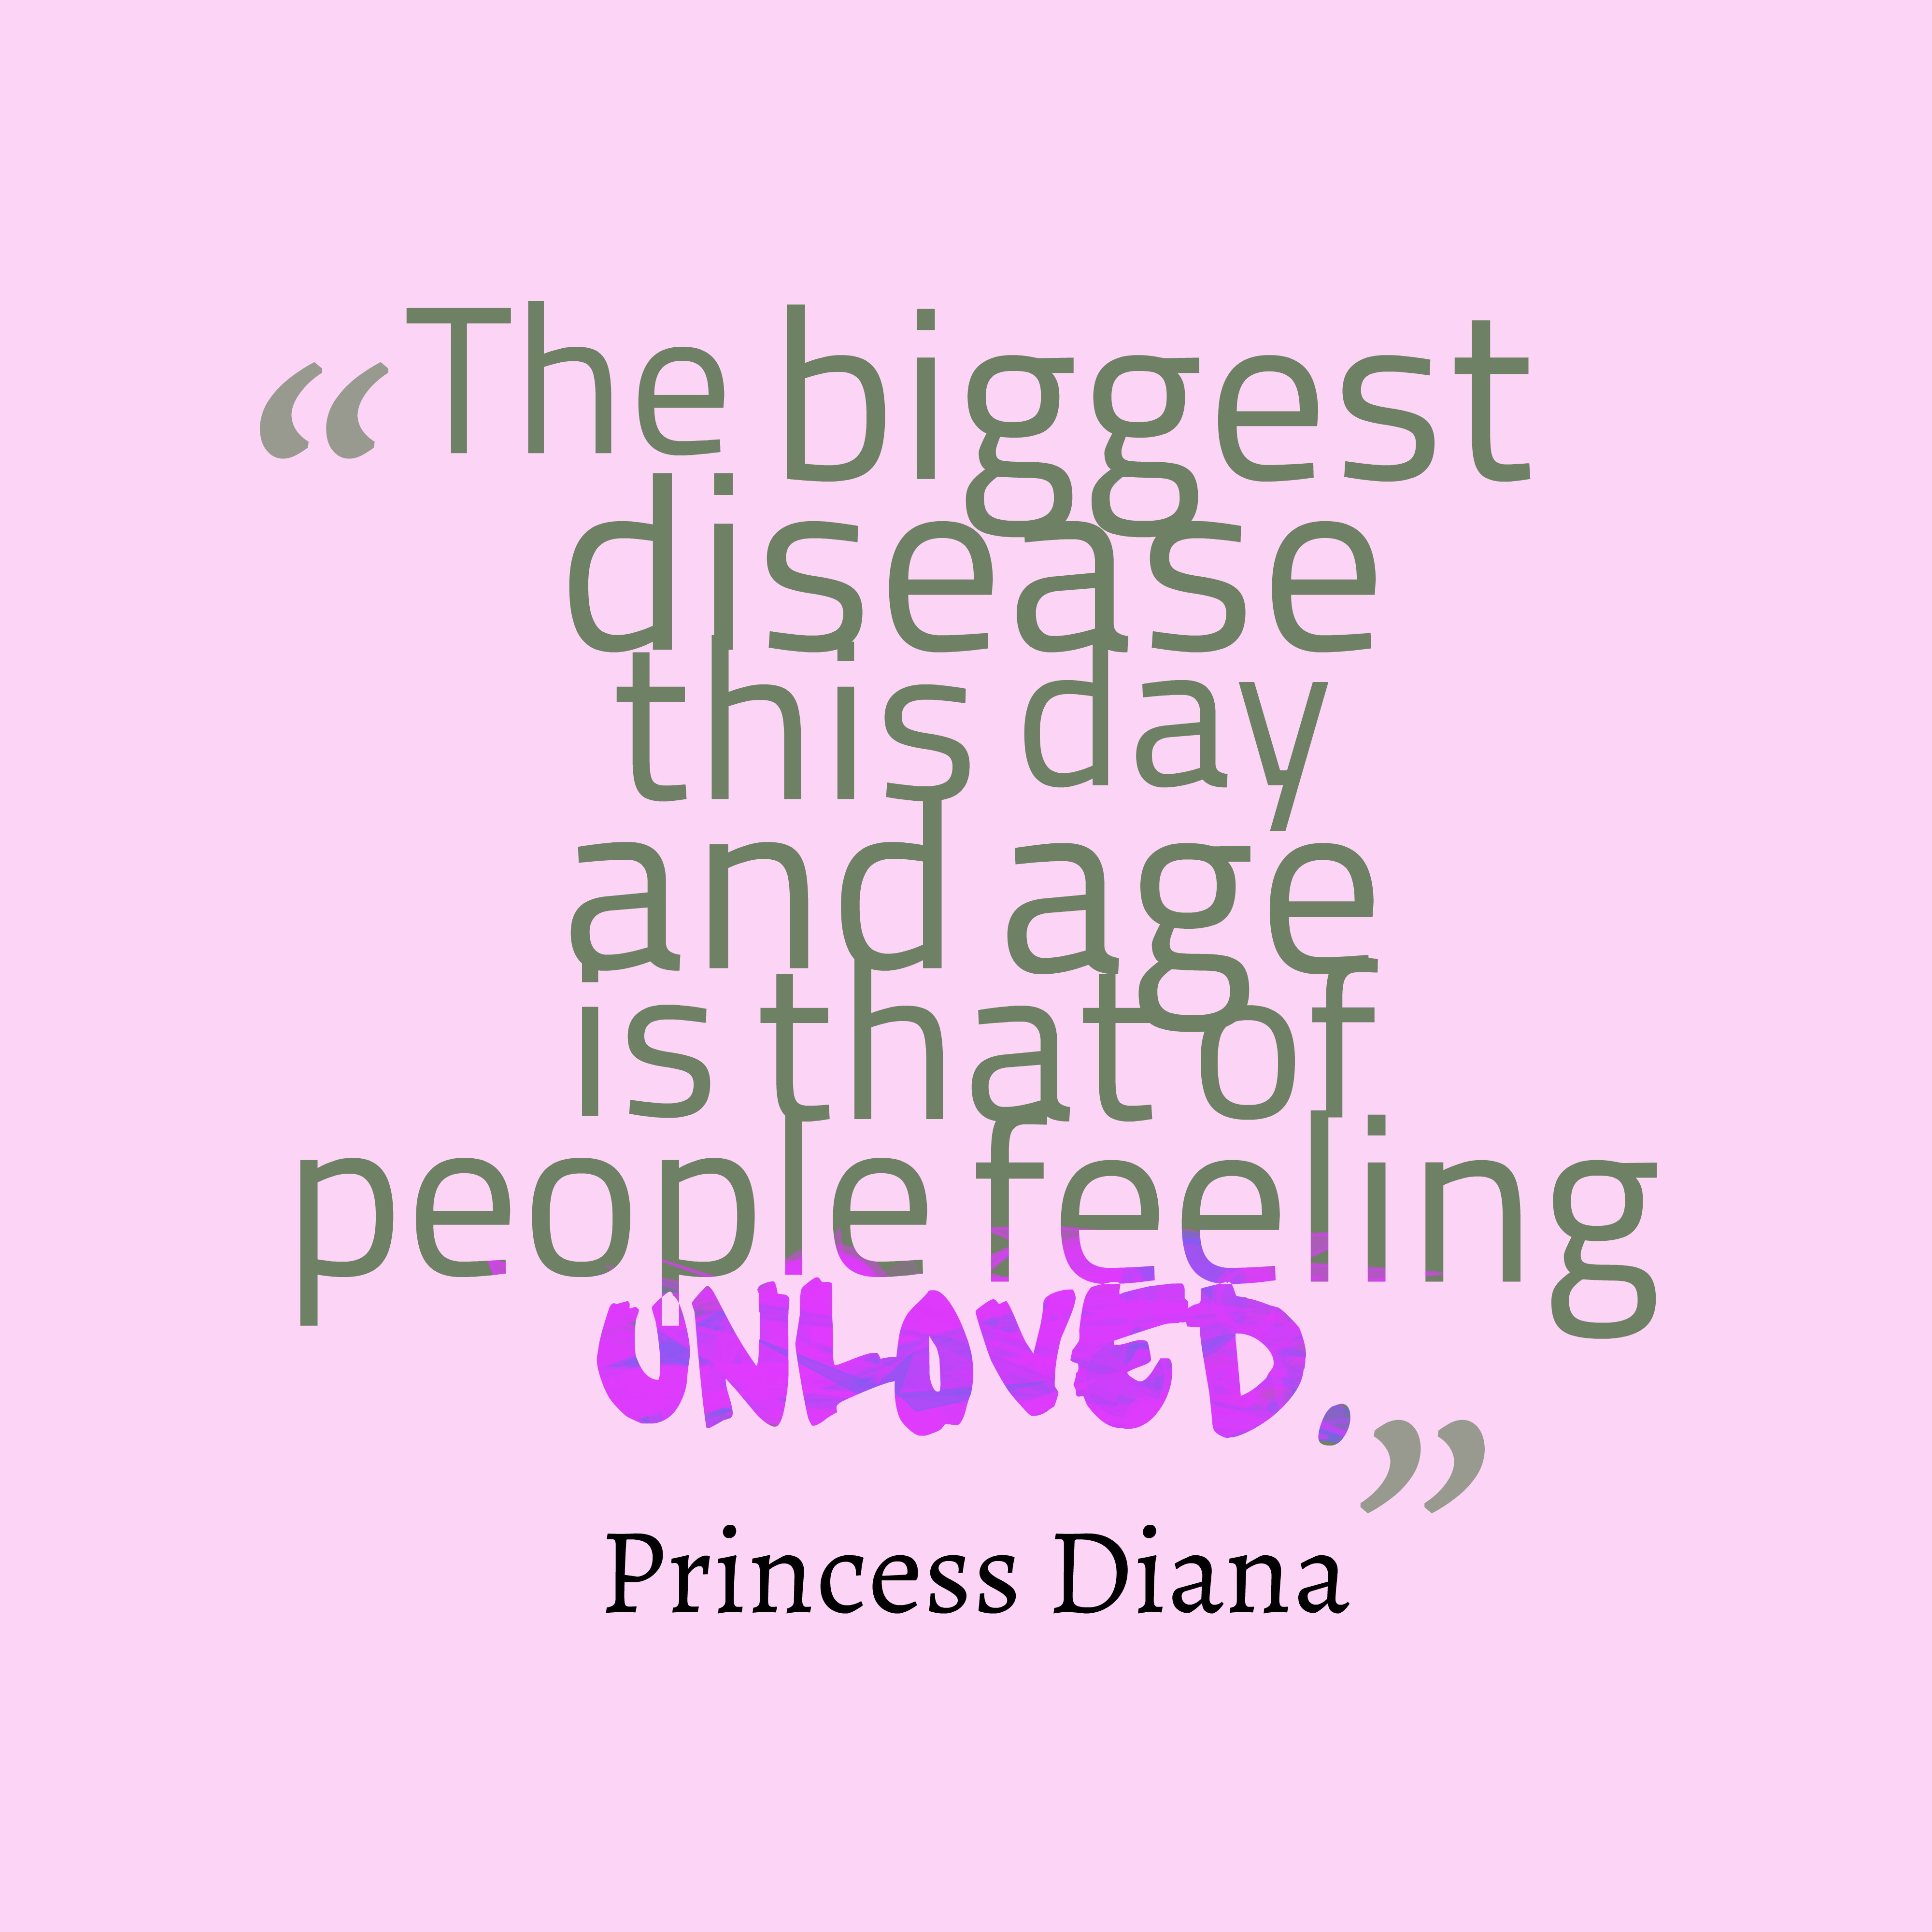 Picture Princess Diana quote about disease. | QuotesCover.com